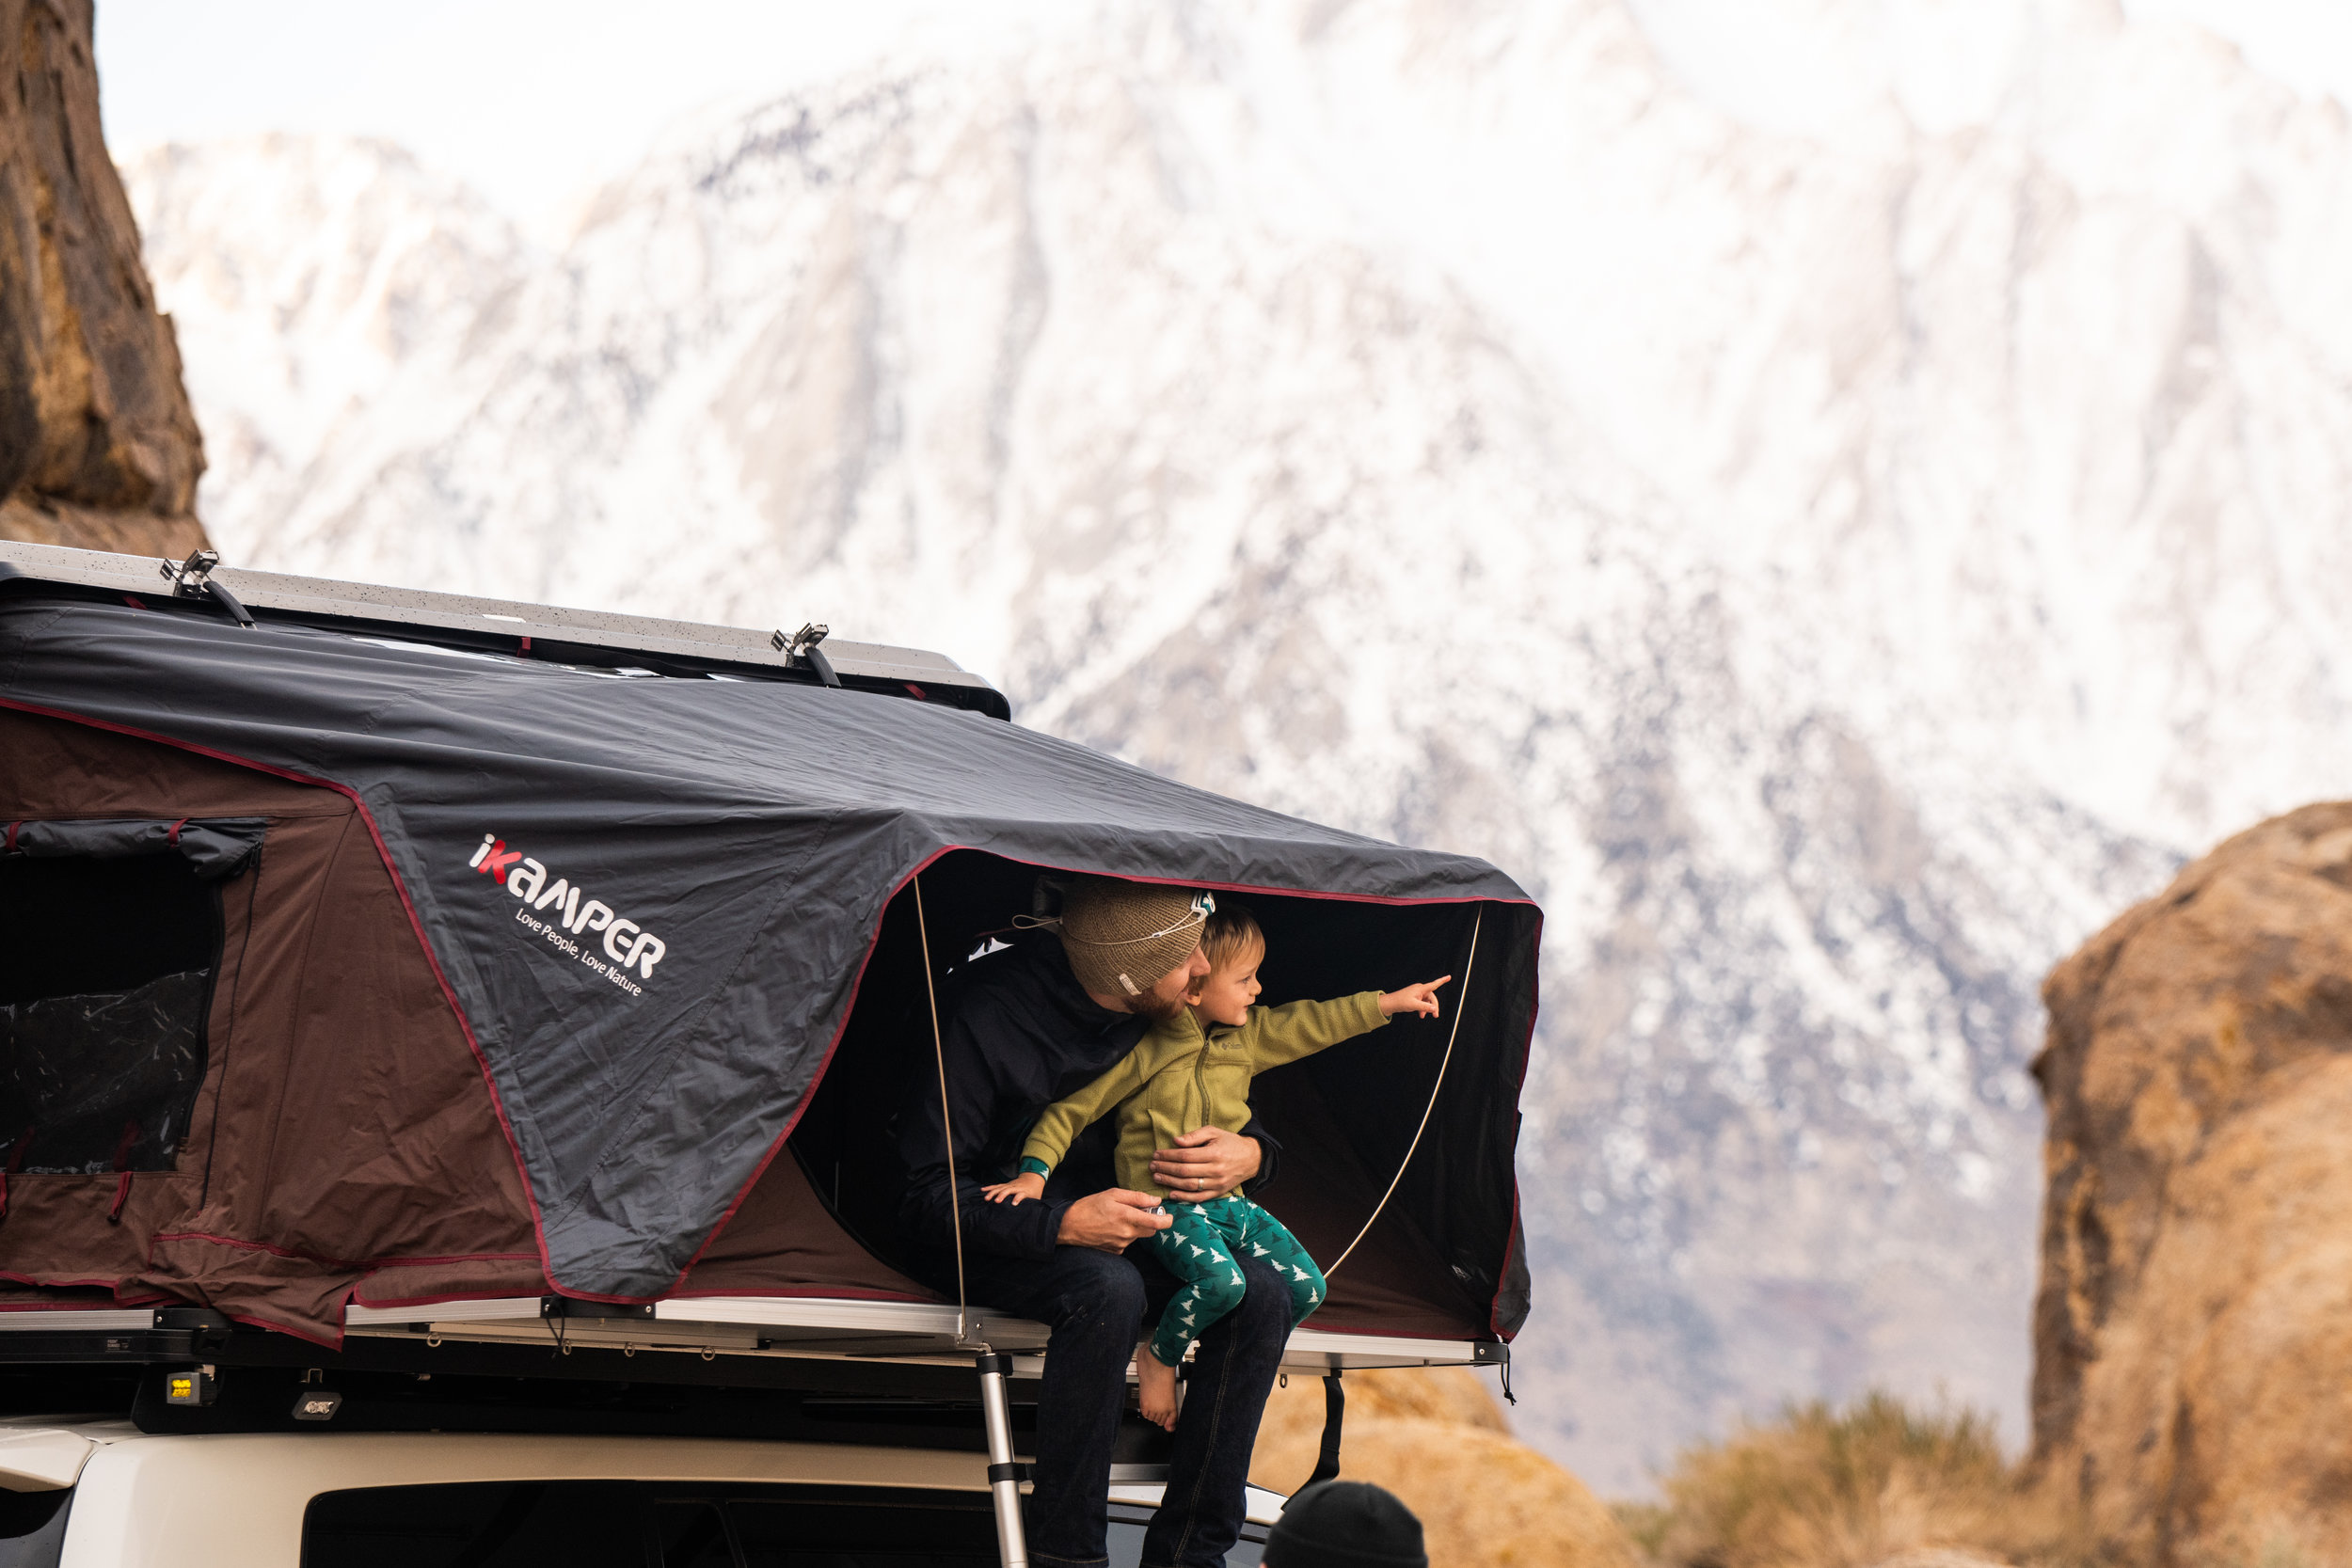 iKamper Skycamp - Travelling with friends and family is possible with the addition of the 'SkyCamp Suite' from iKamper.